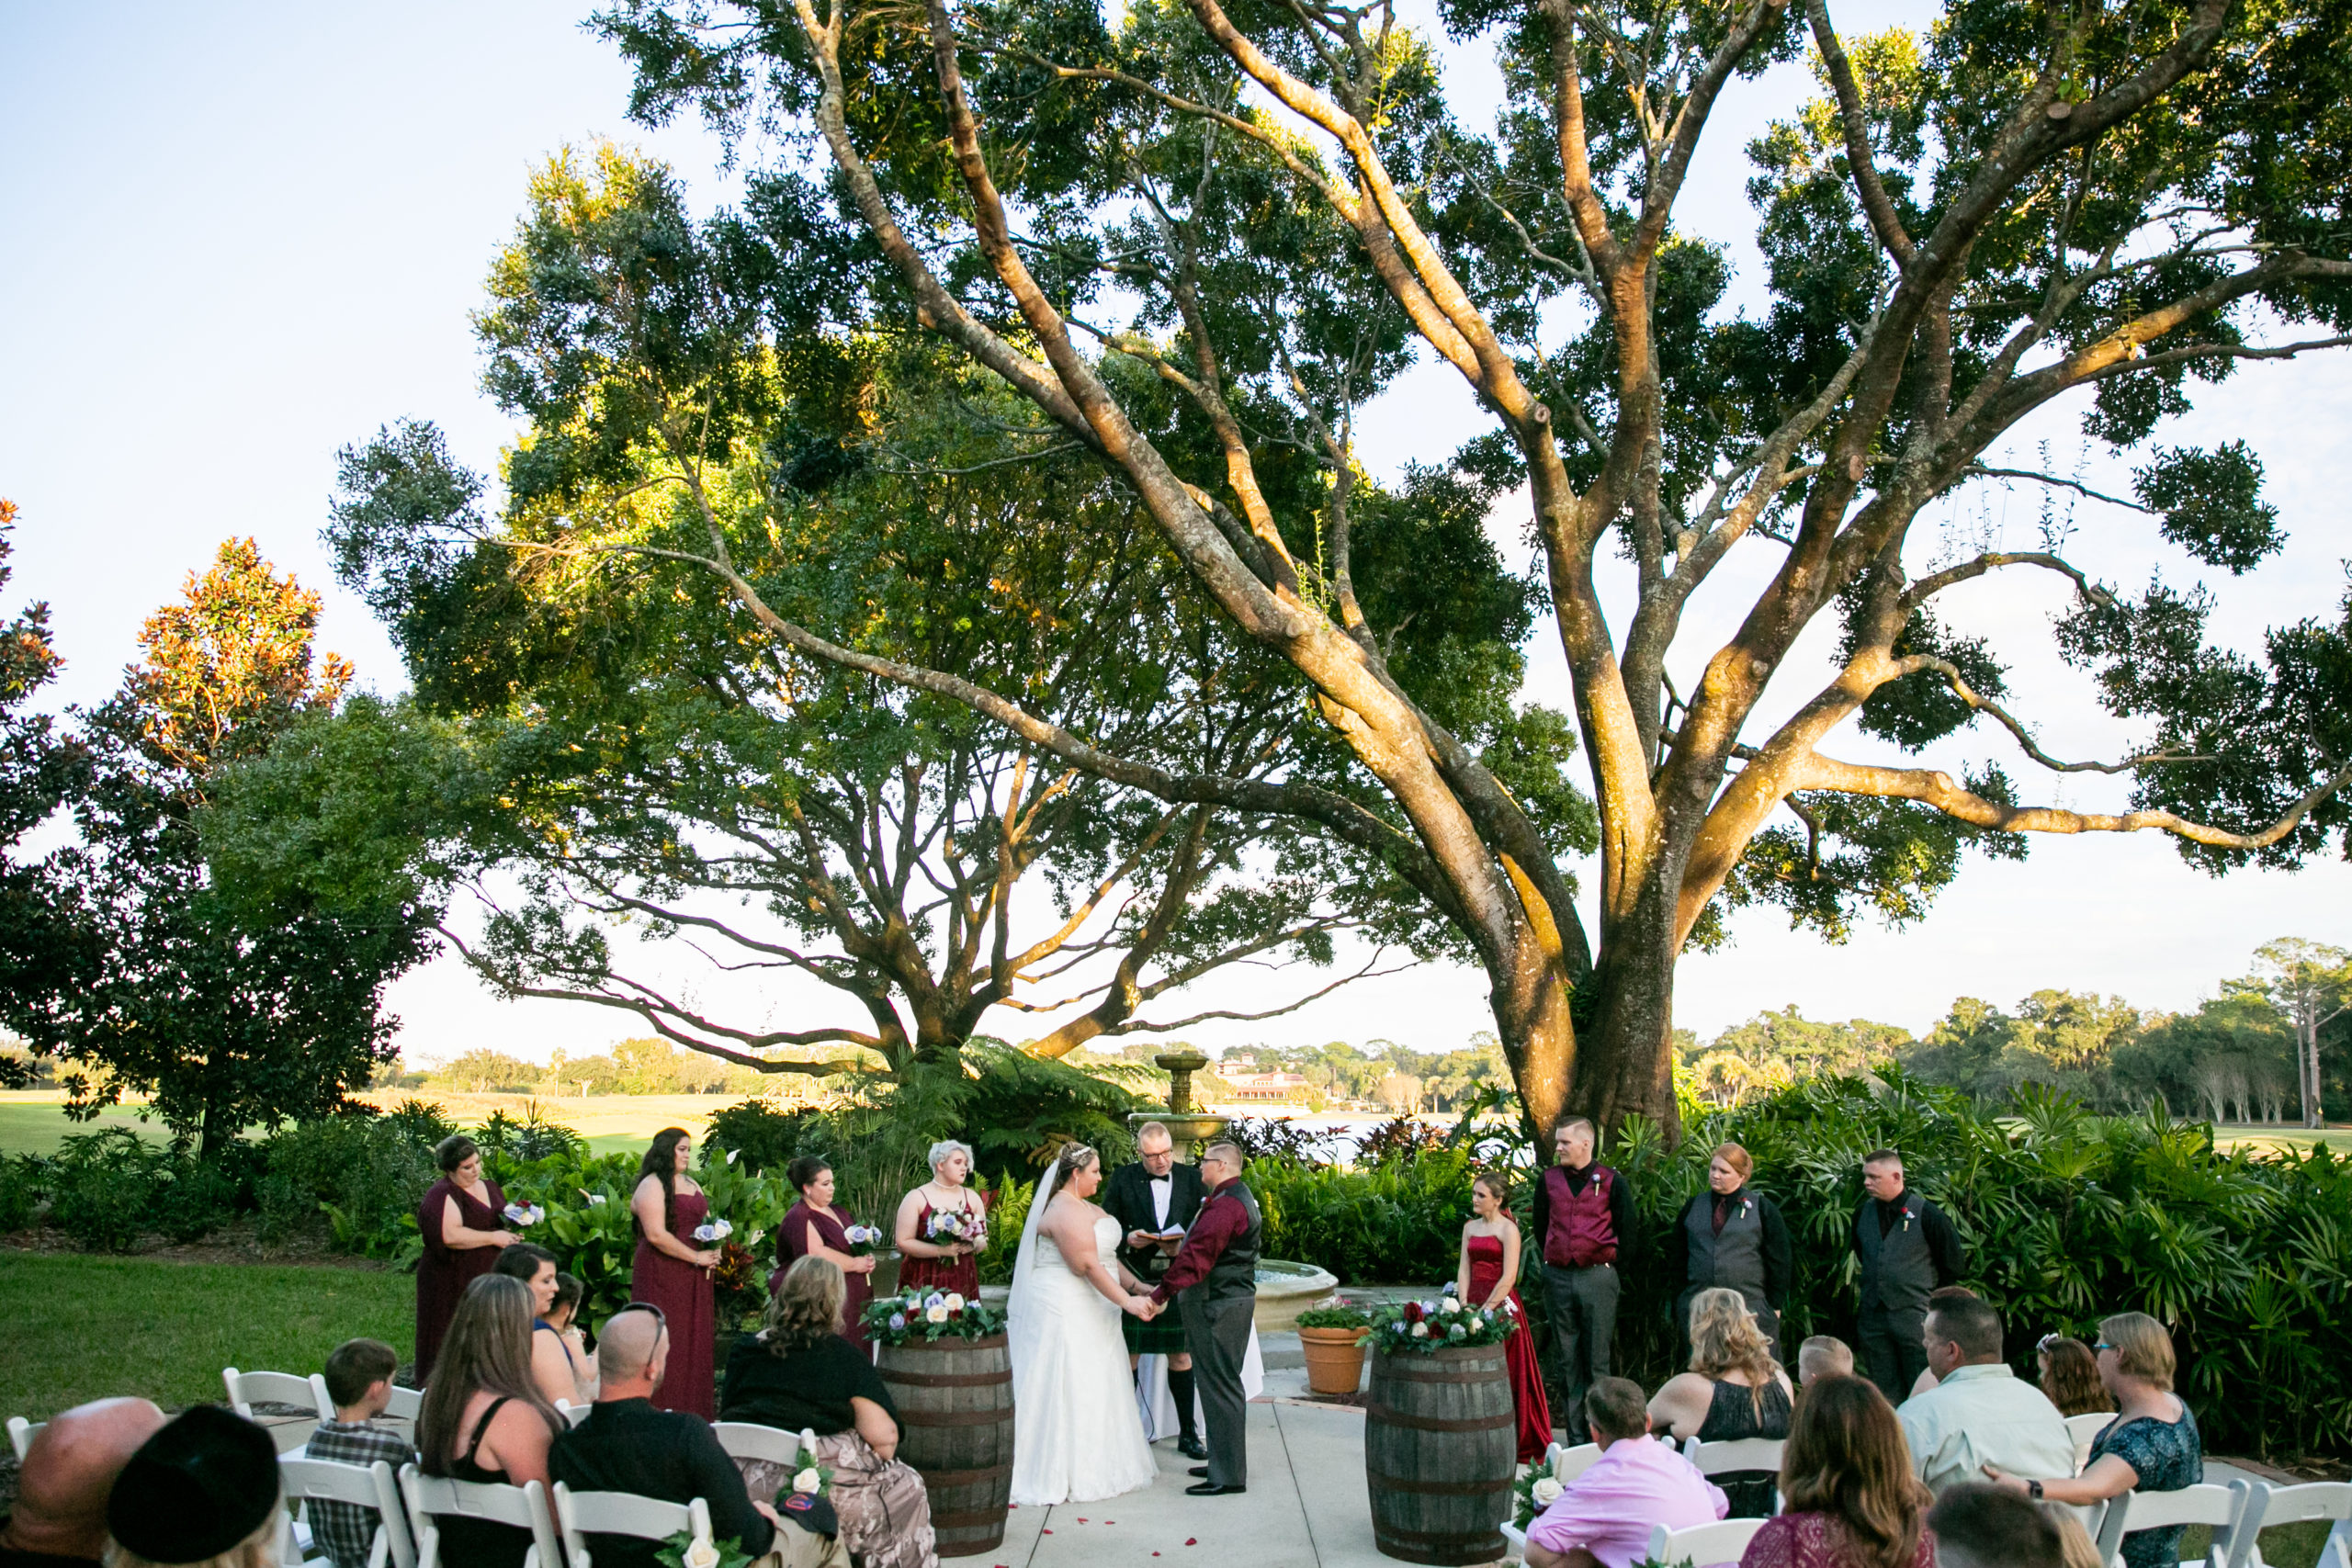 vineyard inspired wedding ceremony with wine barrels